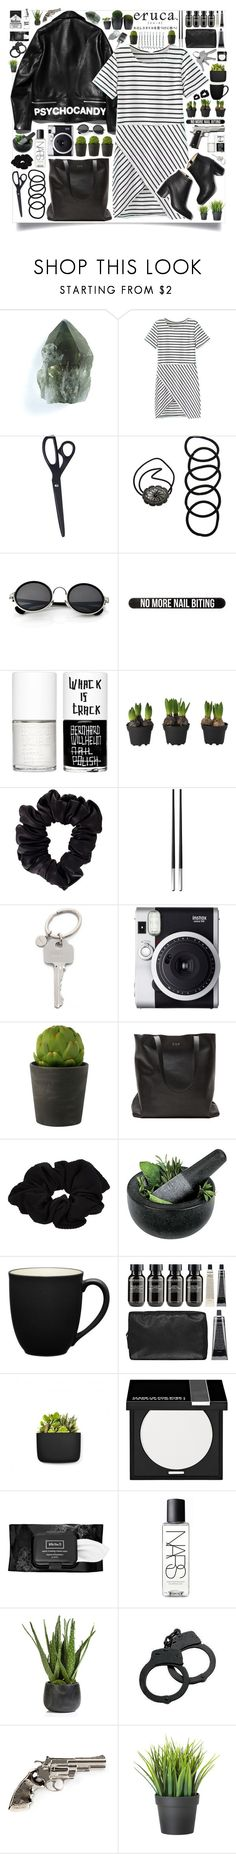 """""""Untitled #244"""" by zalarupar ❤ liked on Polyvore featuring Paul Andrew, HAY, Wet Seal, Retrò, Uslu Airlines, American Apparel, Christofle, Paul Smith, Fuji and Linea"""